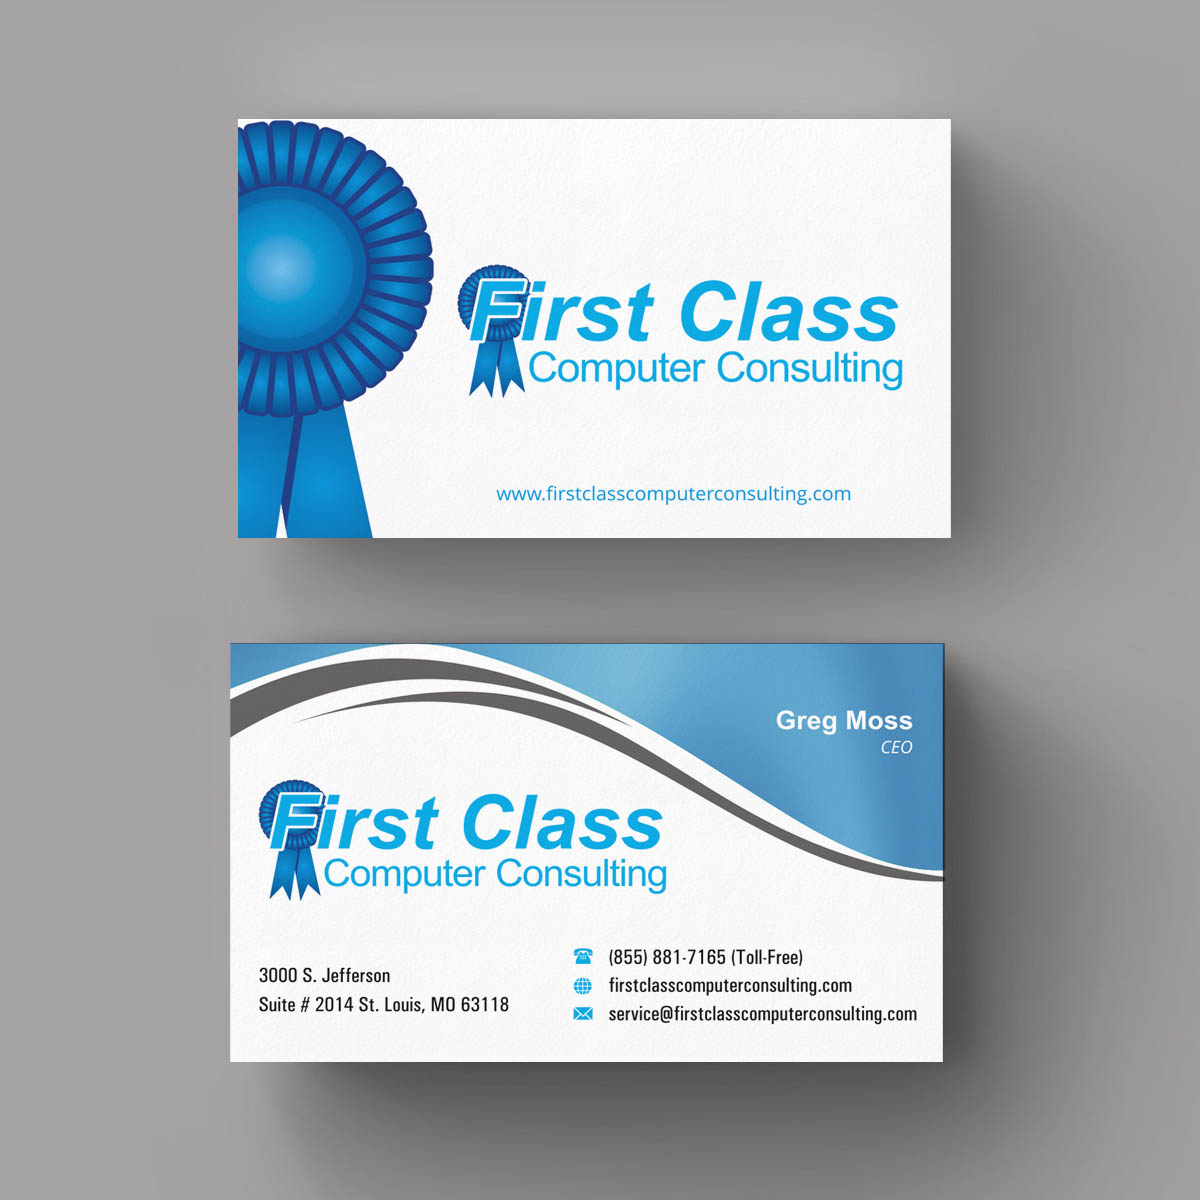 Business Card Design By INDIAN Ashok For First Class Ventures LLC